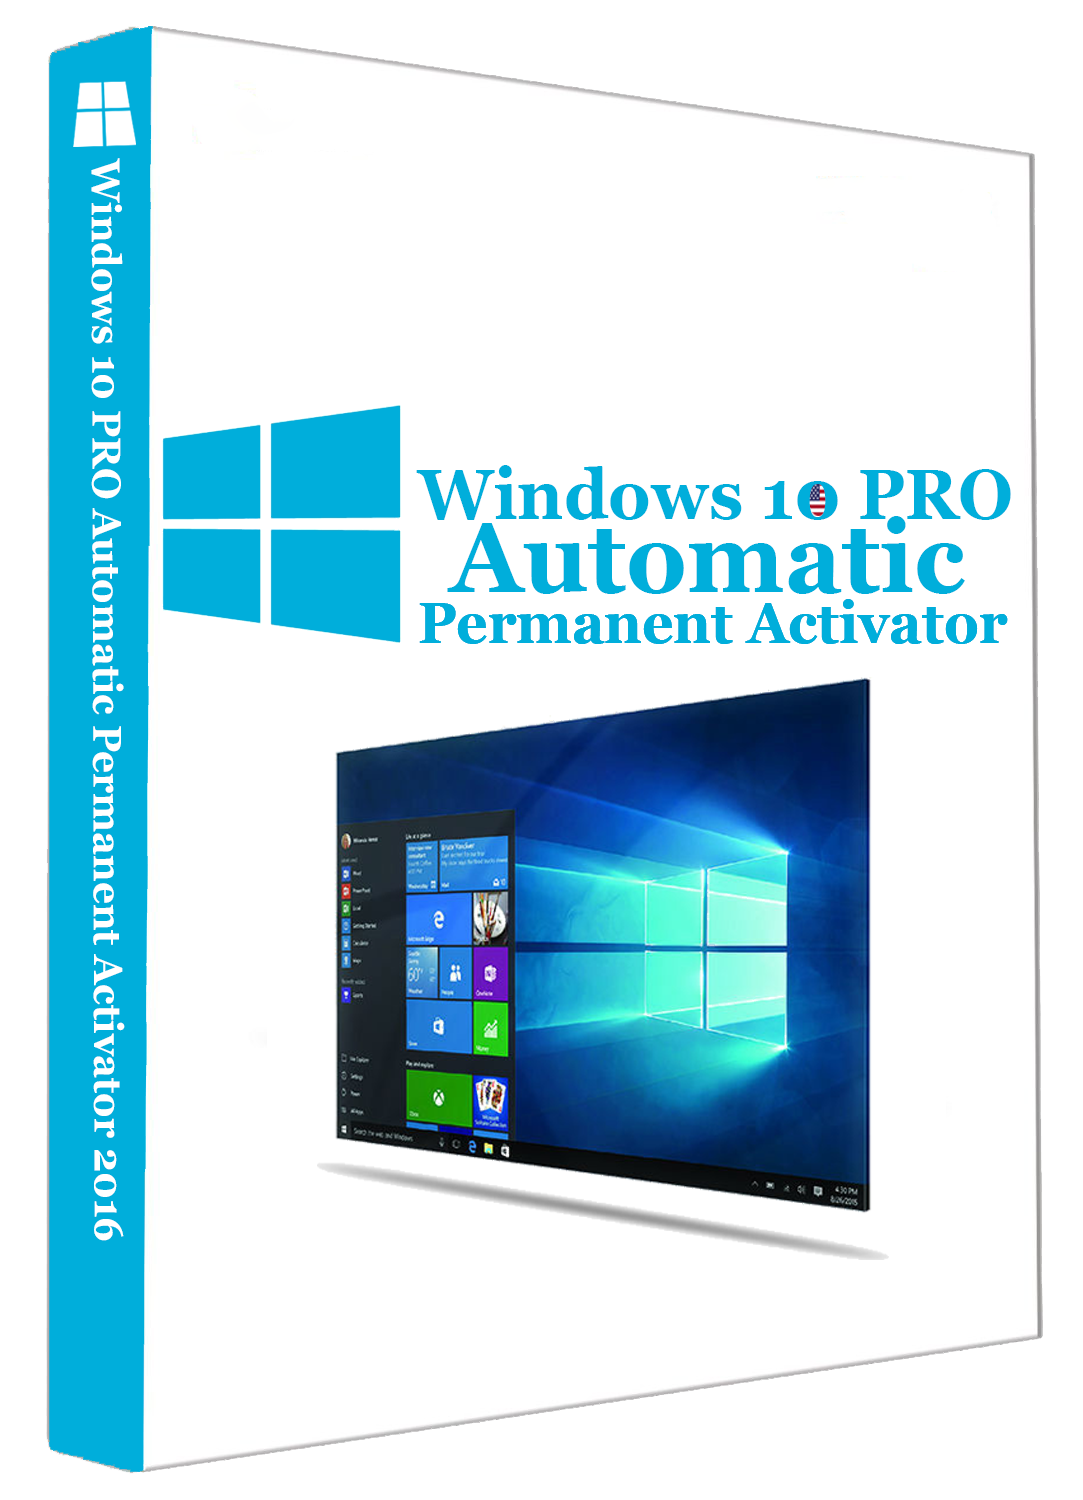 Windows 10 PRO Automatic Permanent Activator v1.0